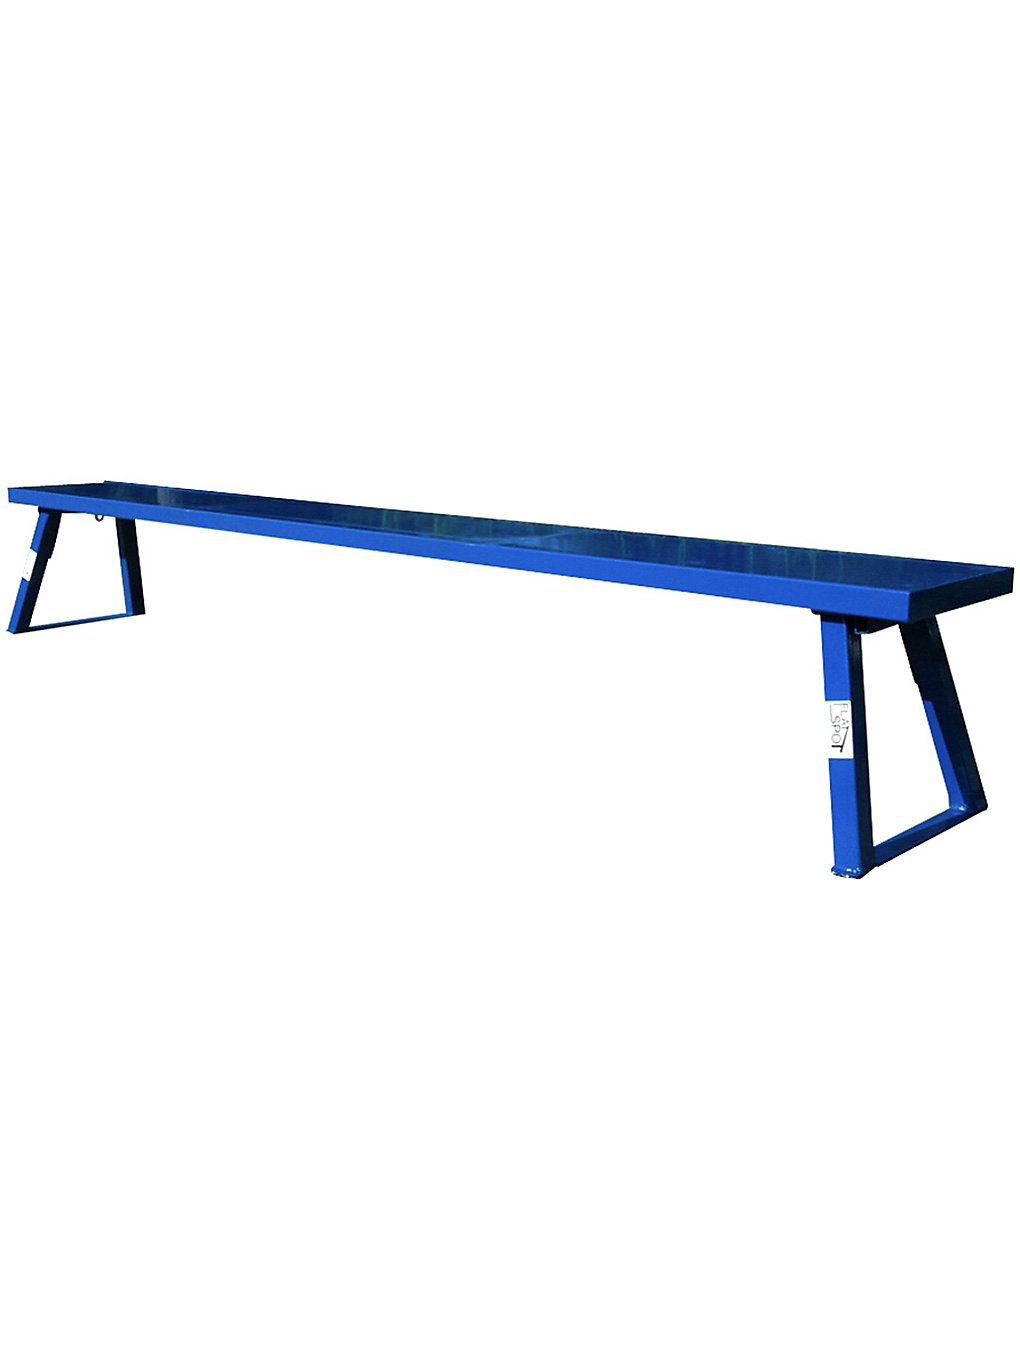 Flat Spot Bench To Go + Extension Skate Obstacle black